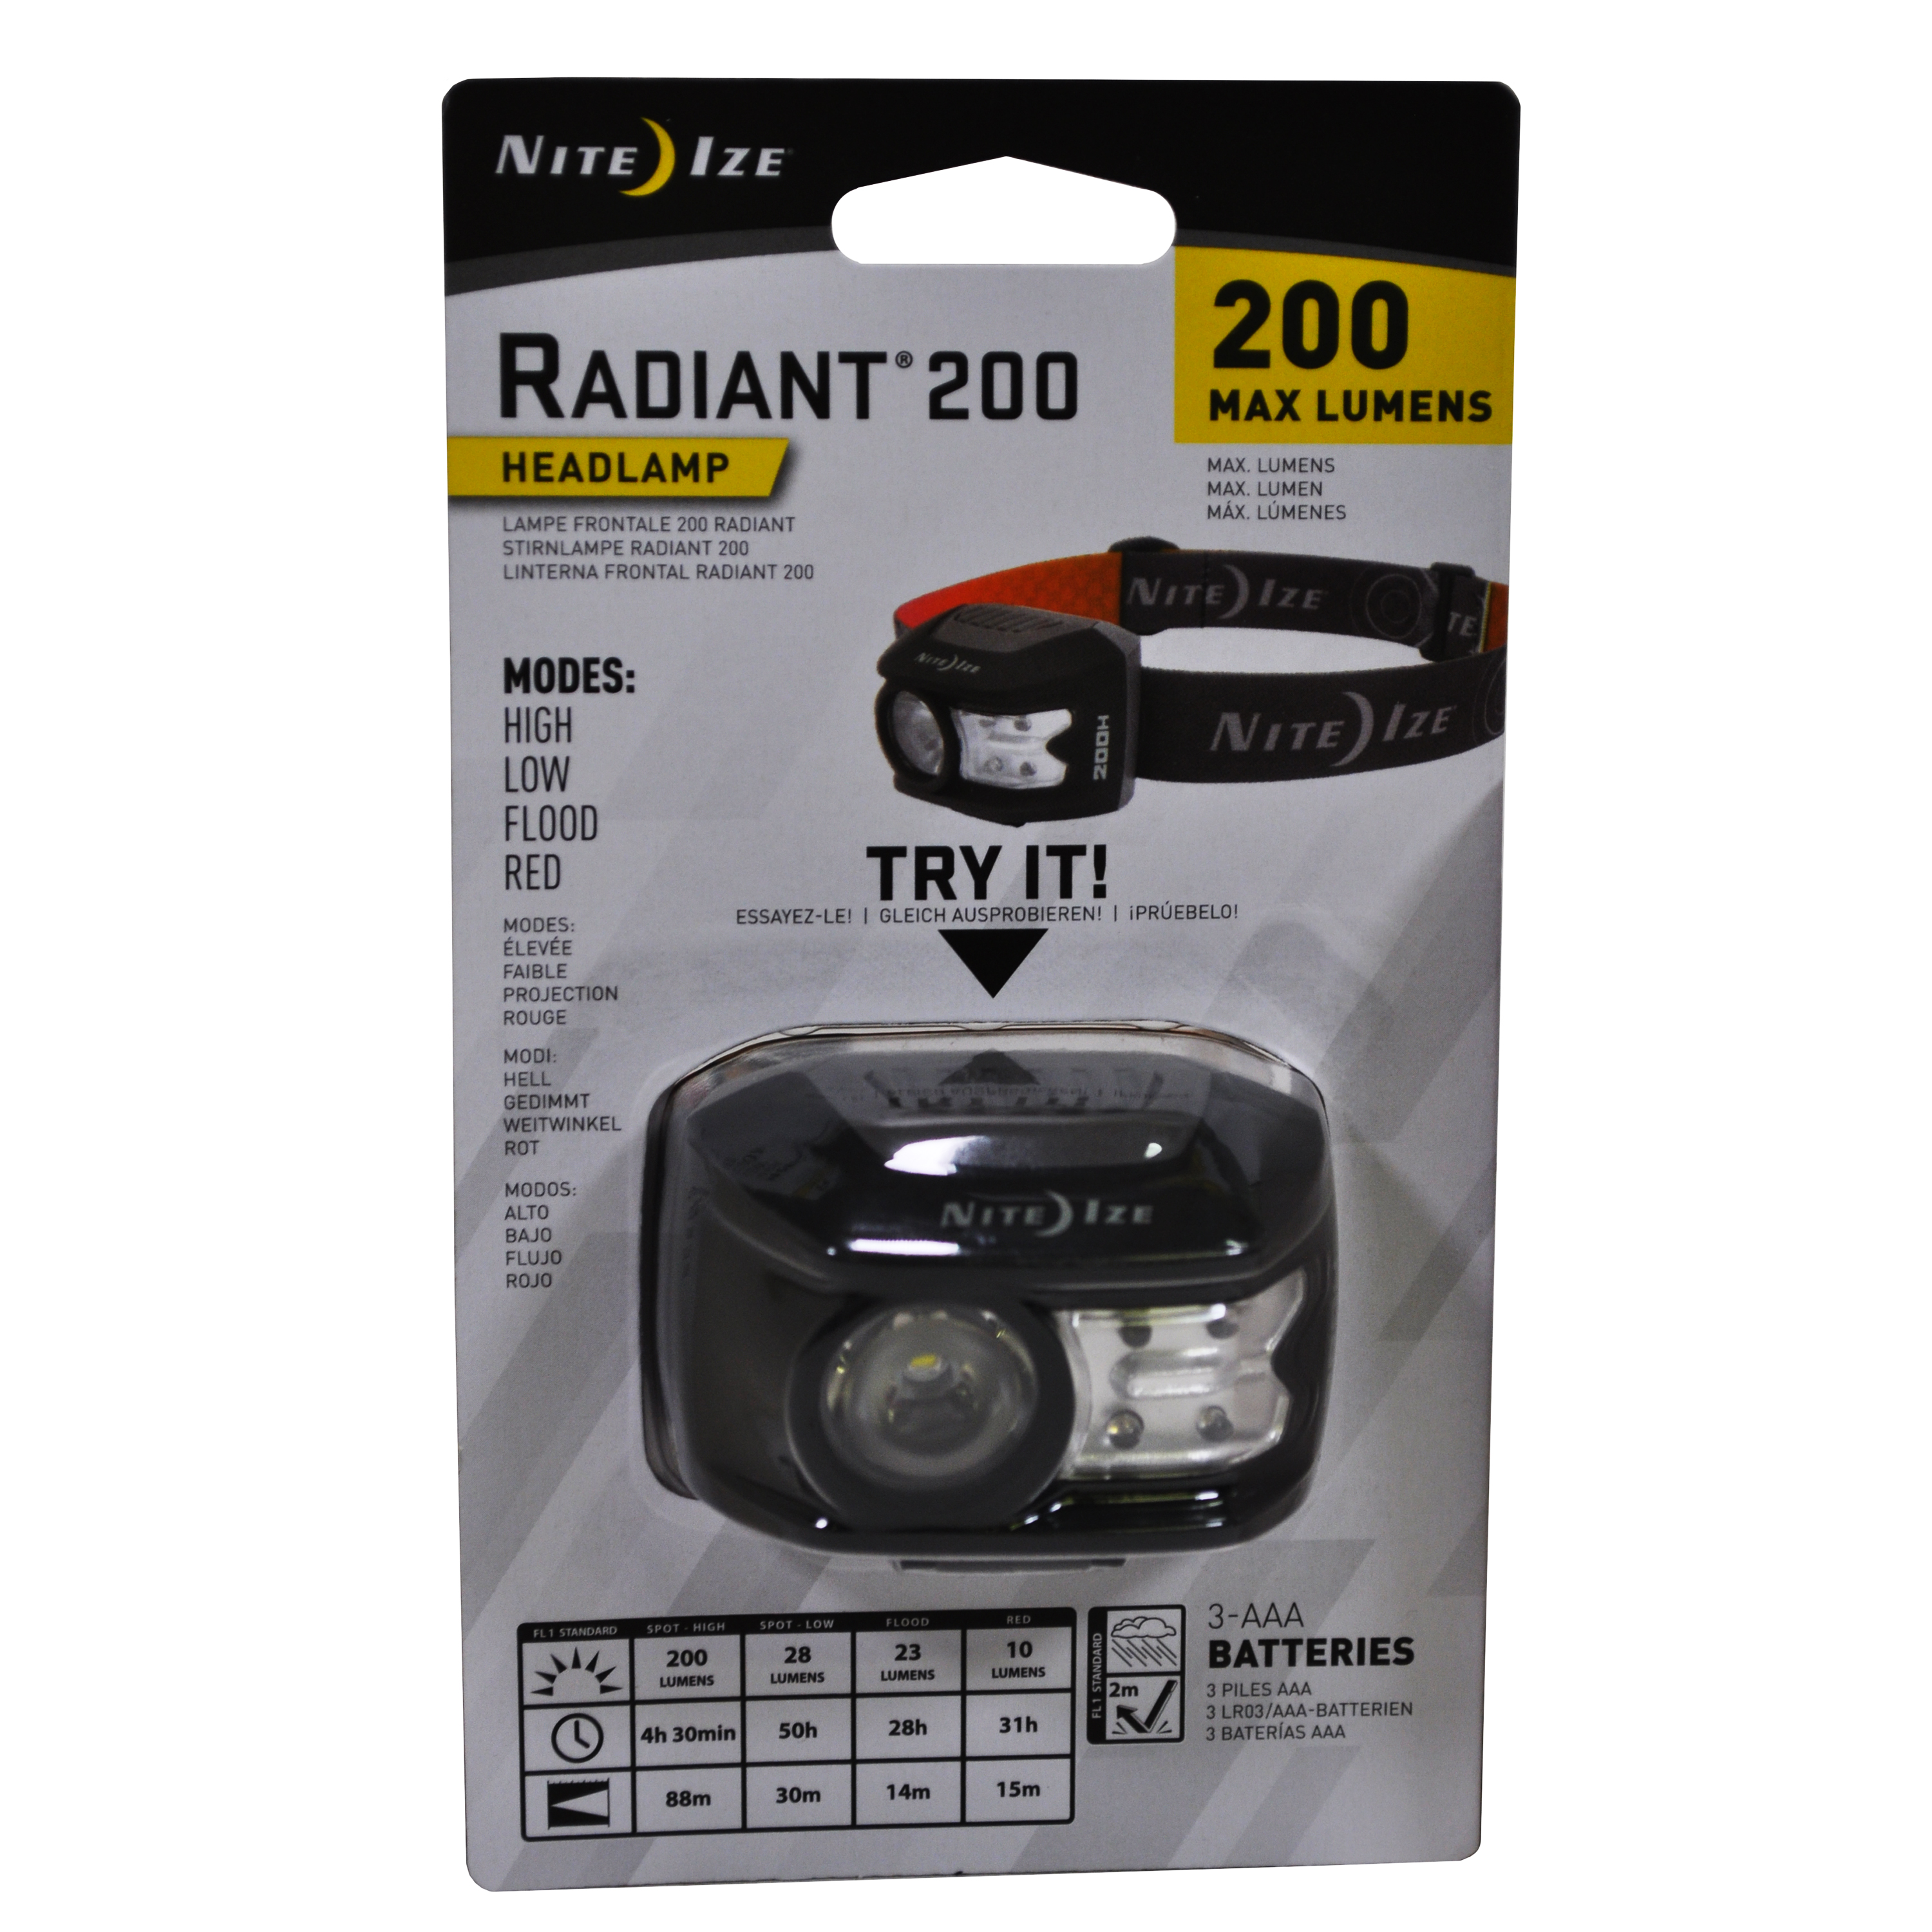 Nite Ize Headlamp Radiant 200